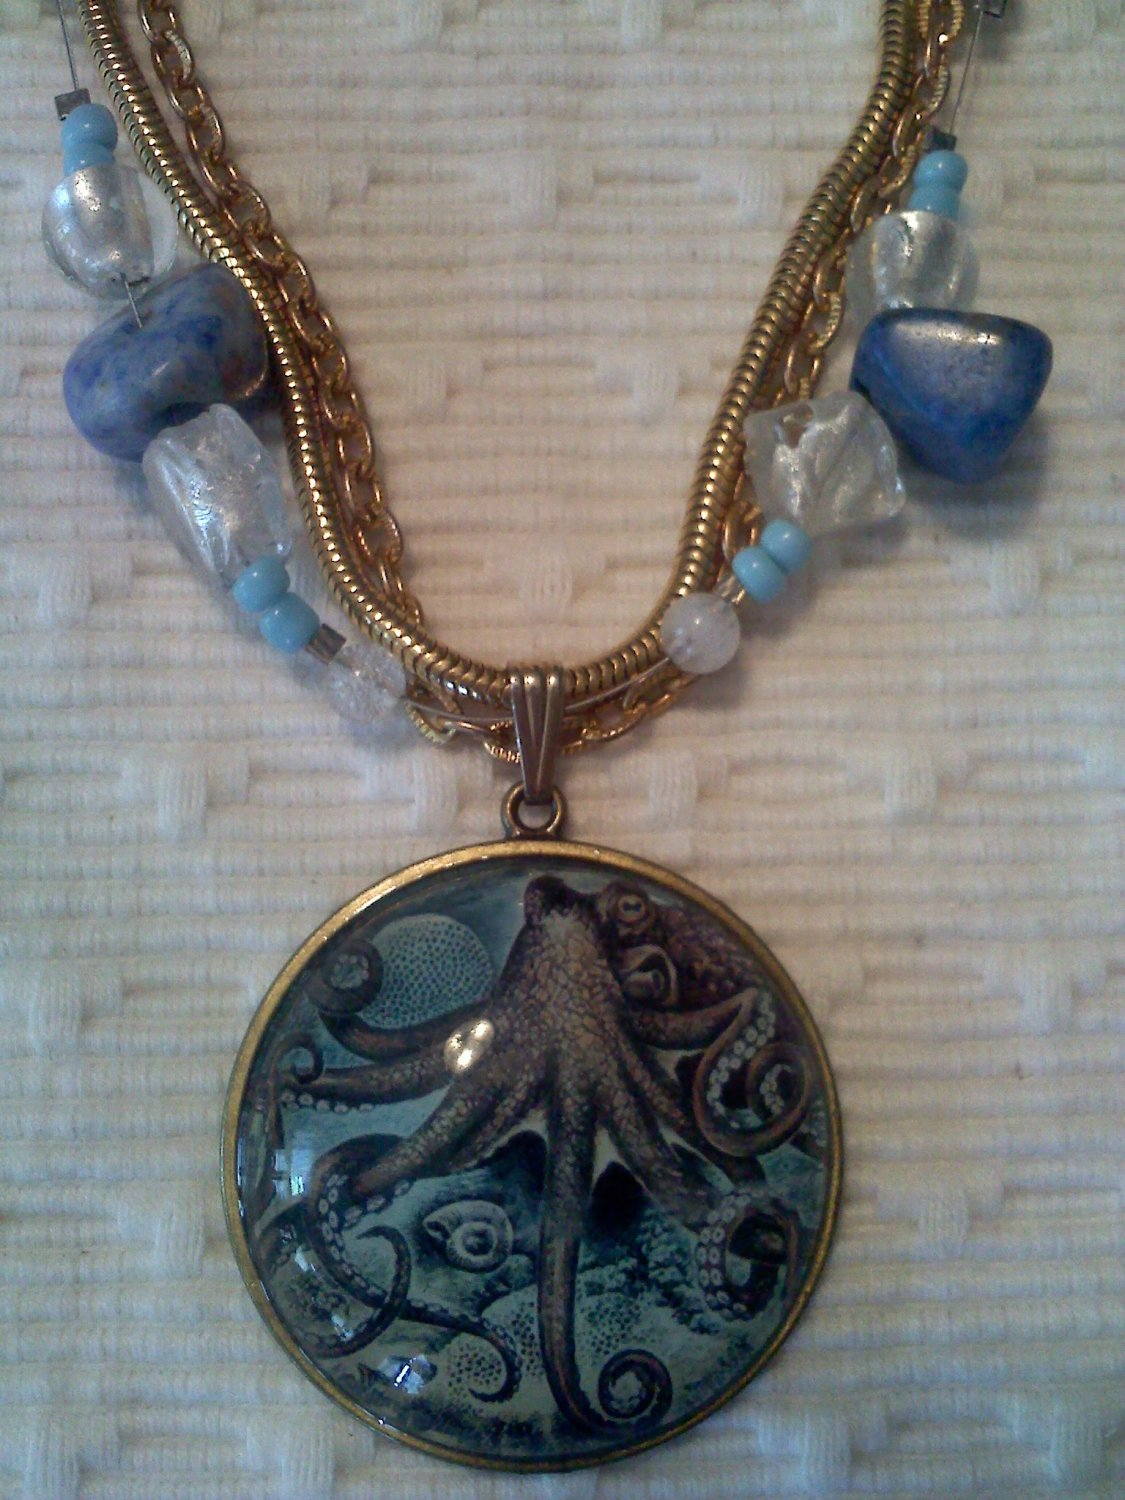 Steampunk Meets the Sea Necklace